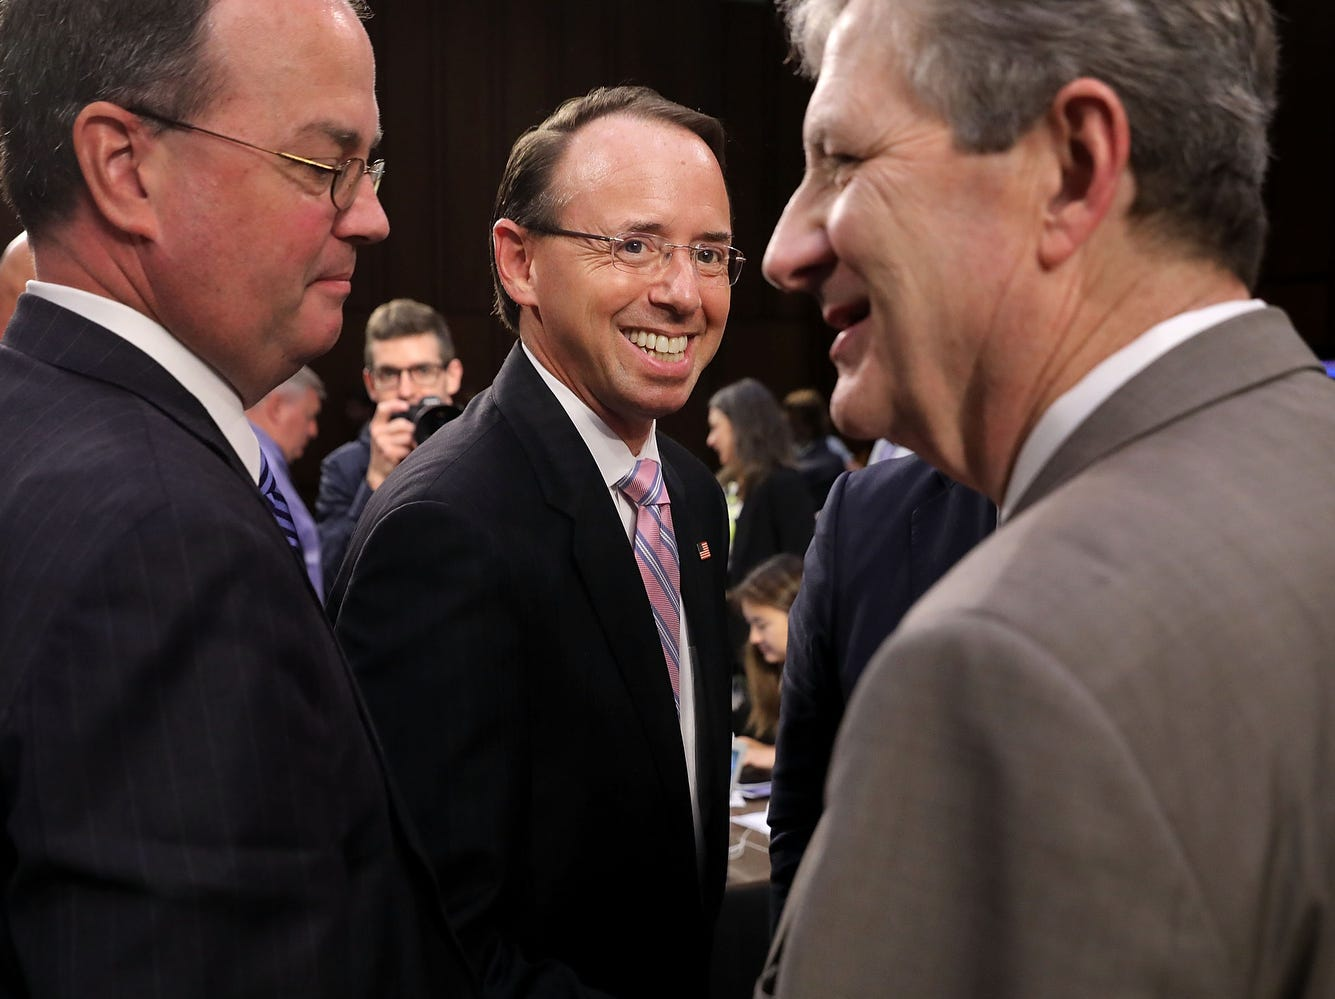 Deputy Attorney General Rod Rosenstein (C)  is all smiles at the  the Supreme Court confirmation hearing for Judge Brett Kavanaugh.